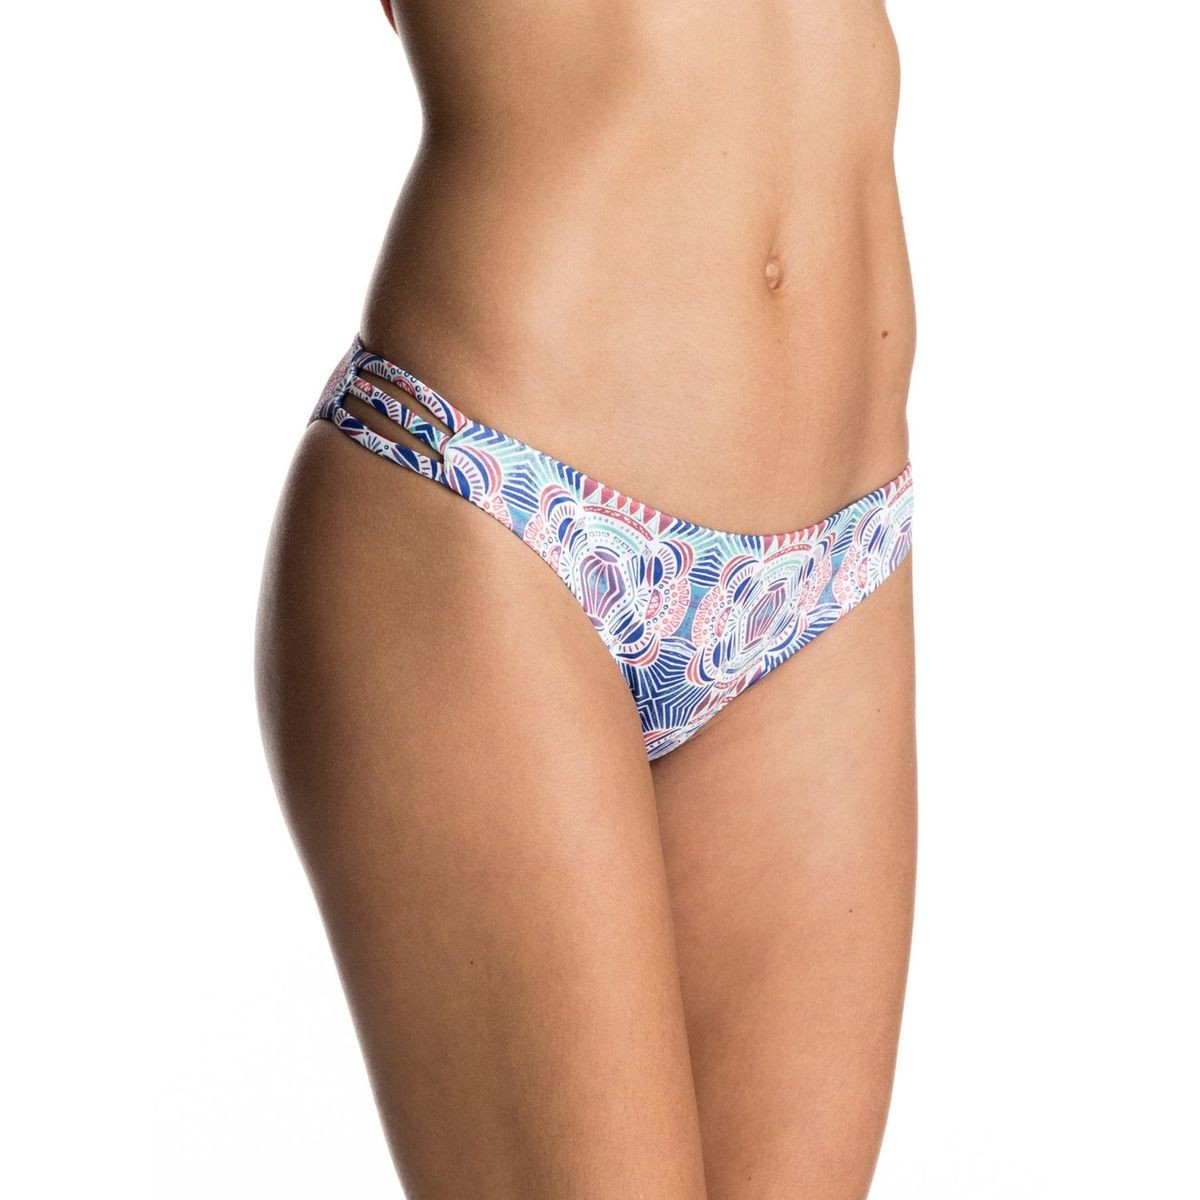 5b4389525f Bas De Maillot De Bain Tanga Strappy Love - Taille : M;S | Products ...